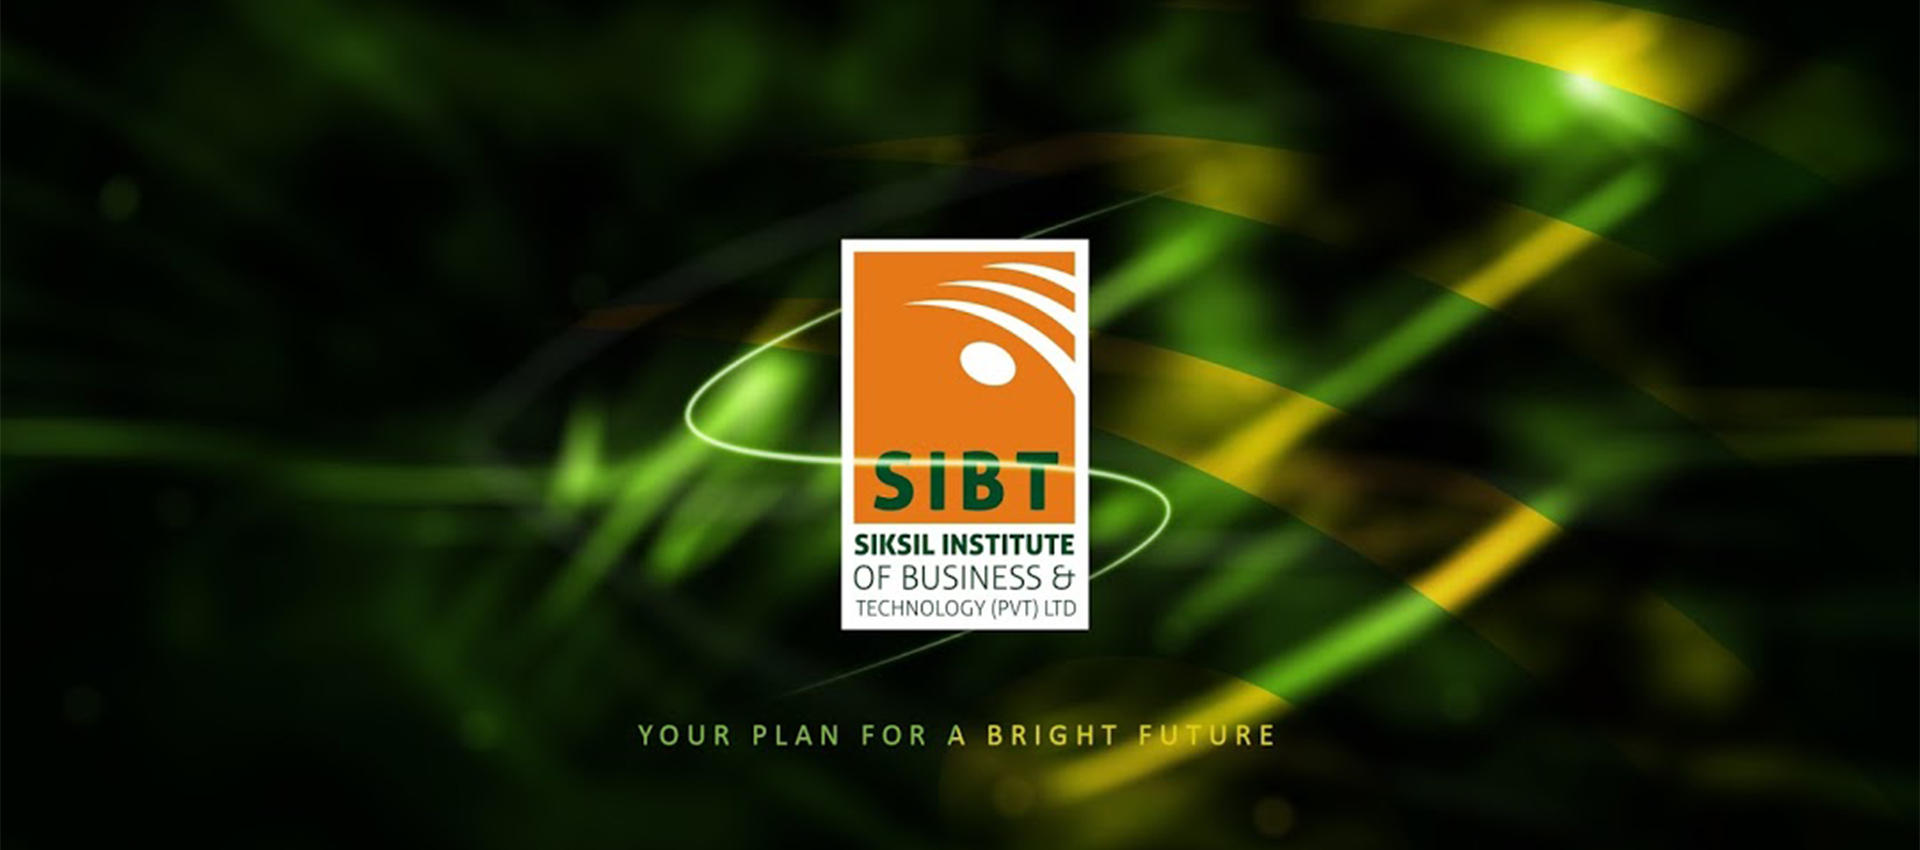 Yesman.lk - Cover Image - Siksil Institute of Business and Technology - SIBT